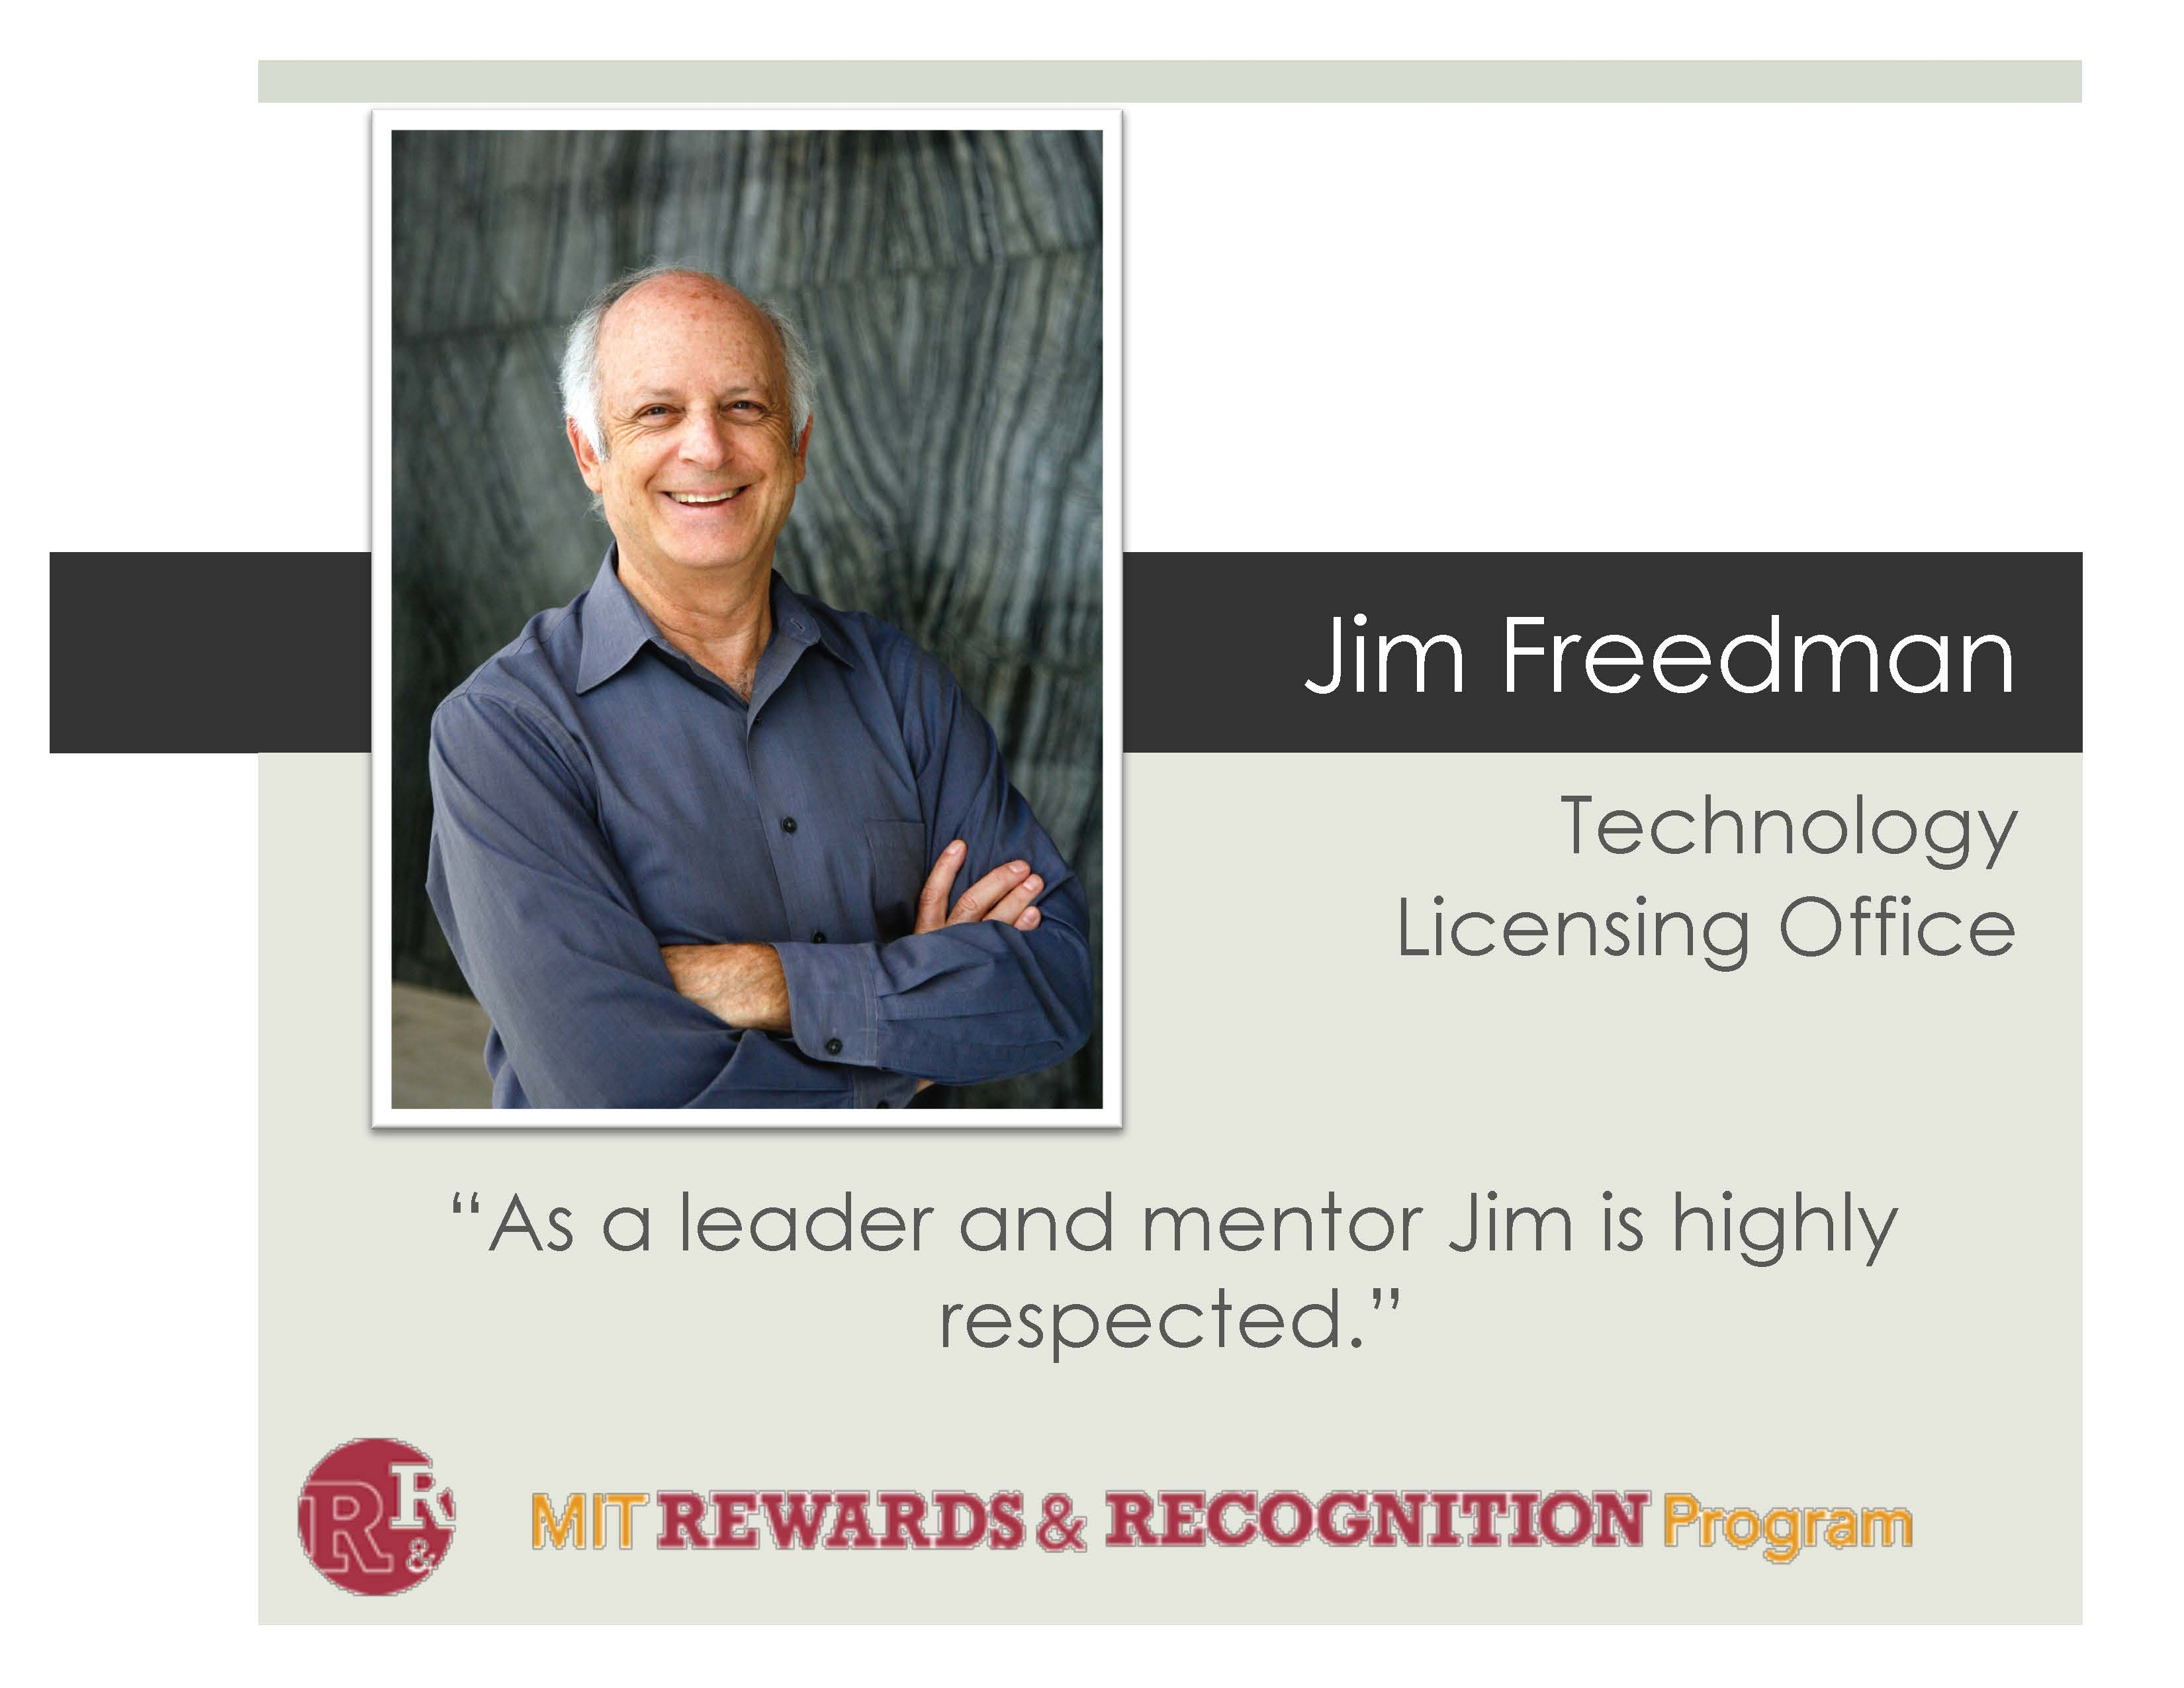 """Image of Jim Freedman with text that reads """"As a leader and mentor Jim is highly respected."""""""